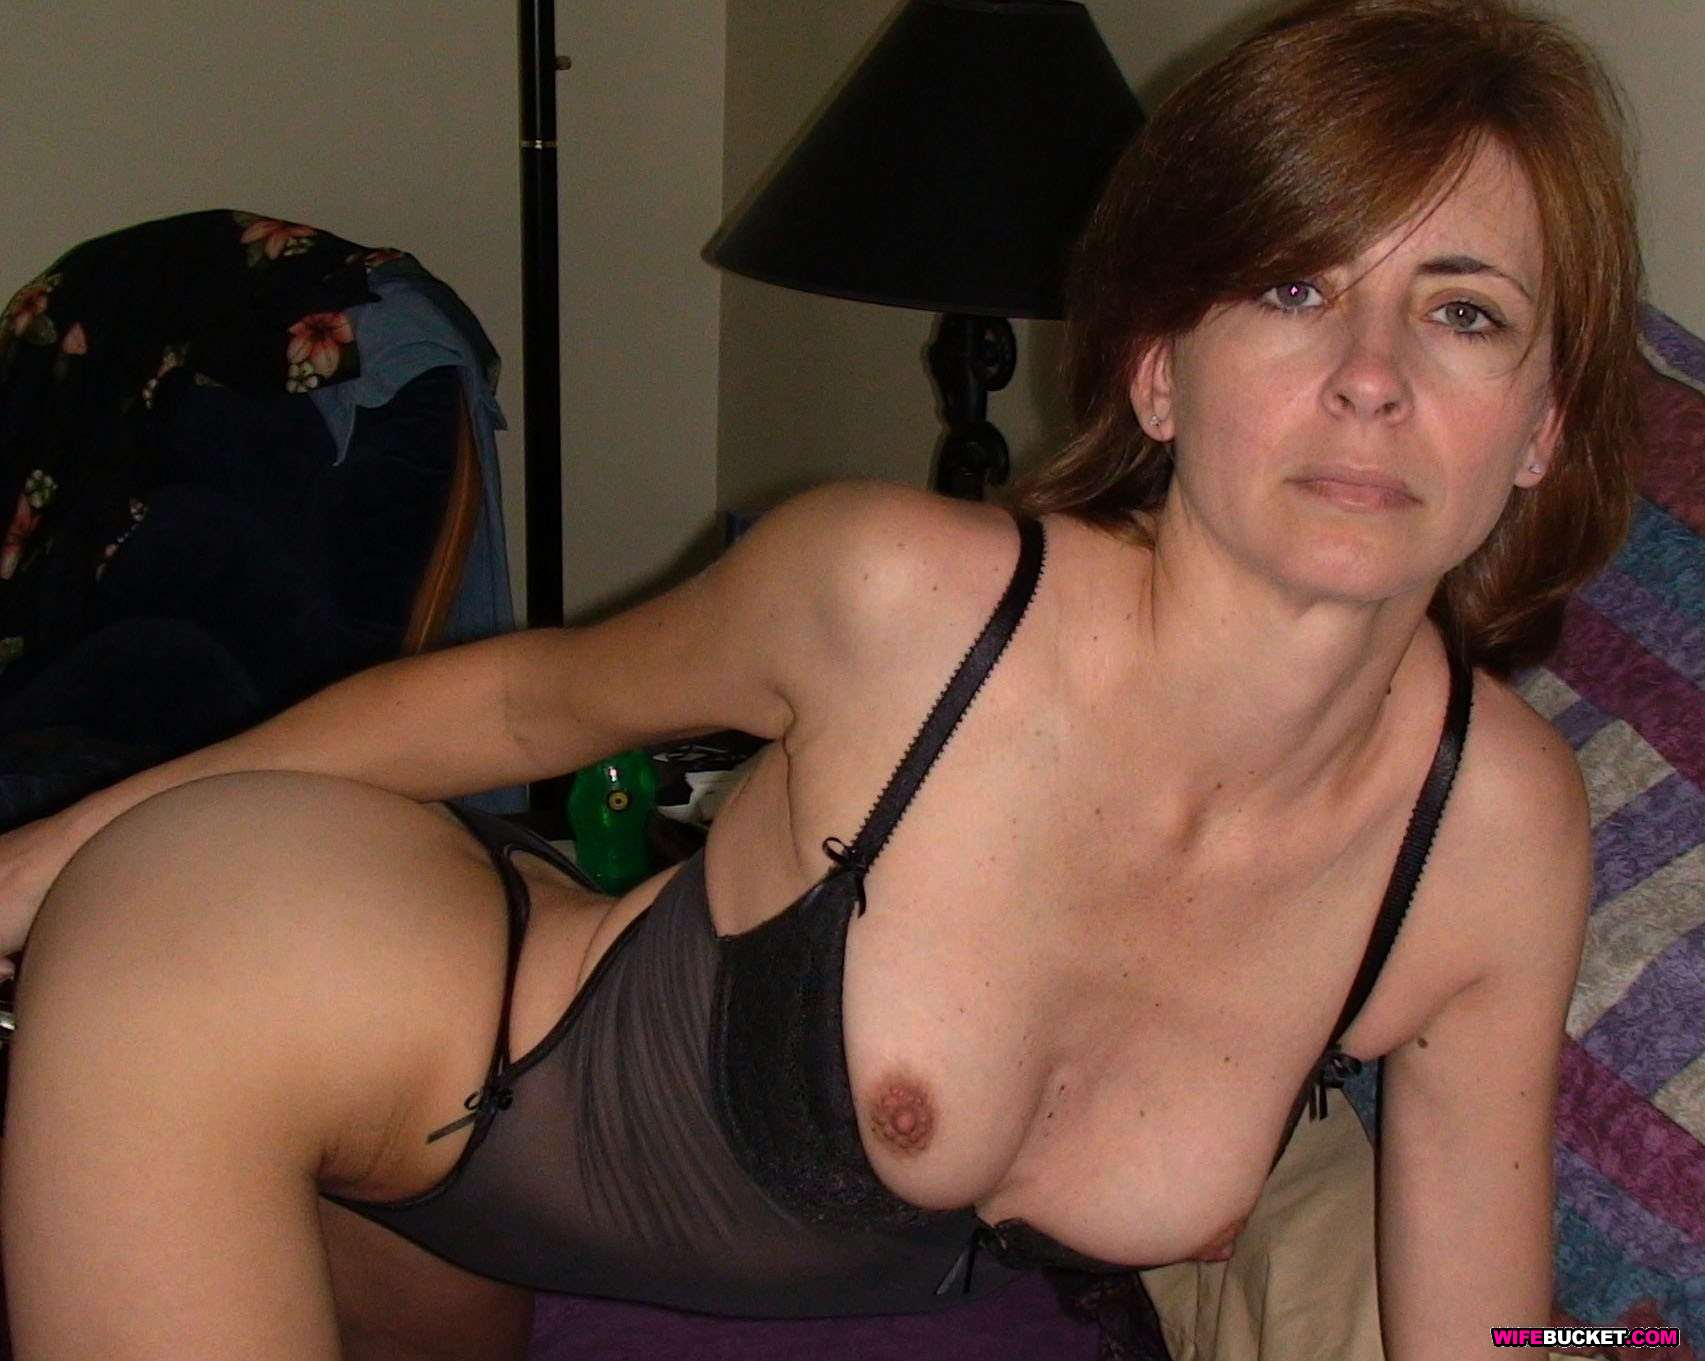 amature milf swingers i bergen